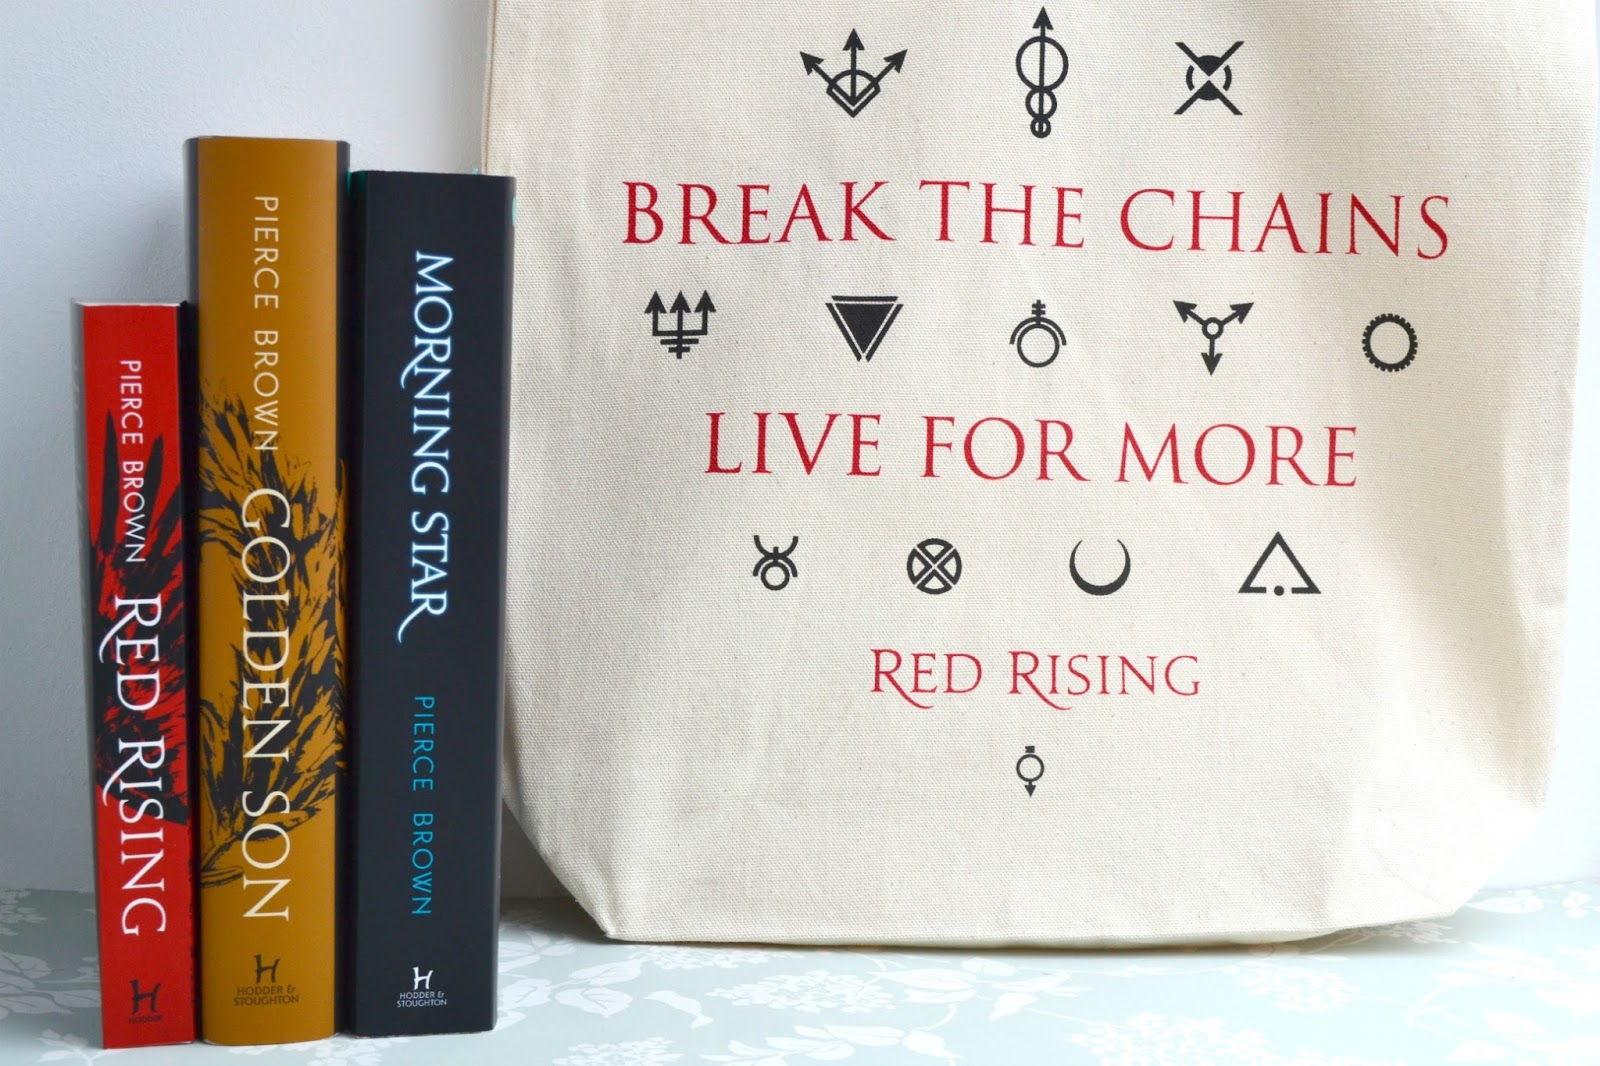 The Red Rising Trilogy by Pierce Brown and a red rising tote bag